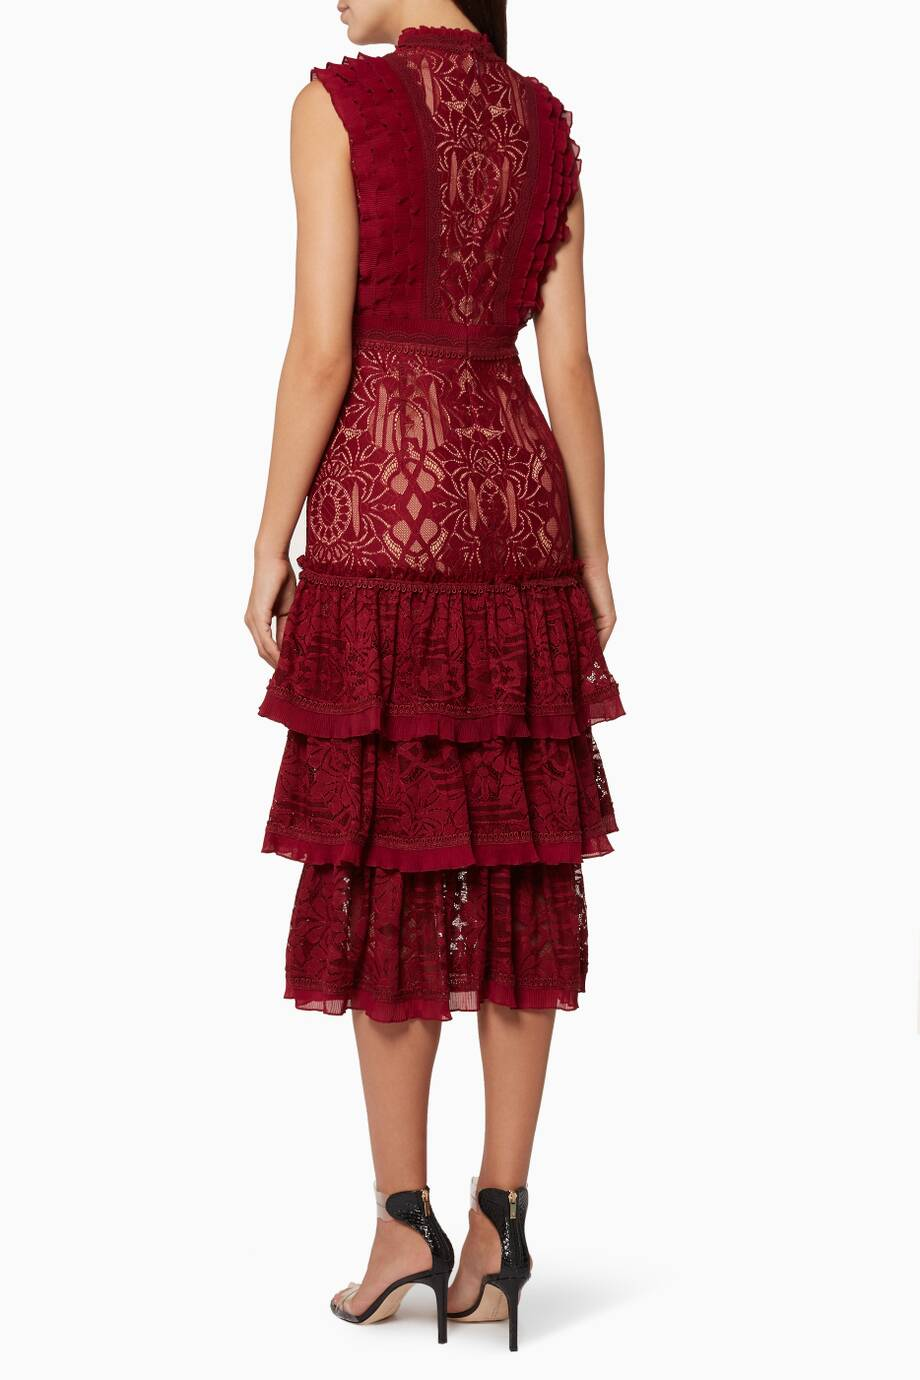 Shop Luxury Jonathan Simkhai Scarlet Red Tower Tiered